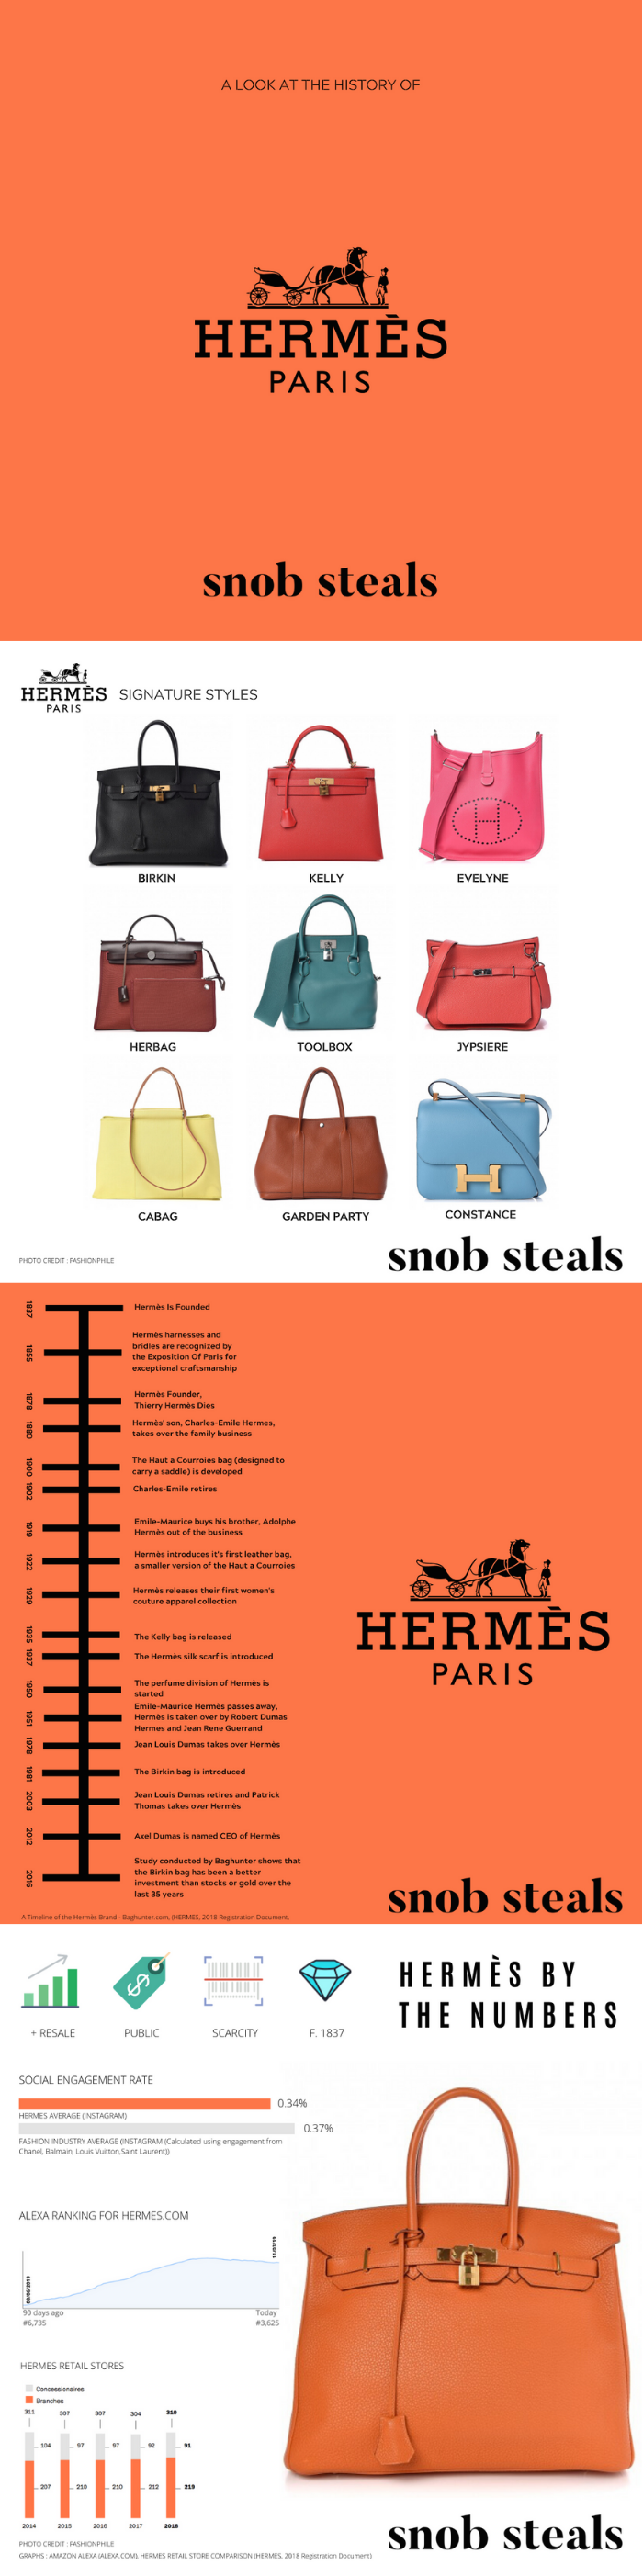 Hermes History Heritage Timeline And Most Iconic Moments Hermes Hermes Paris Fashion Infographic